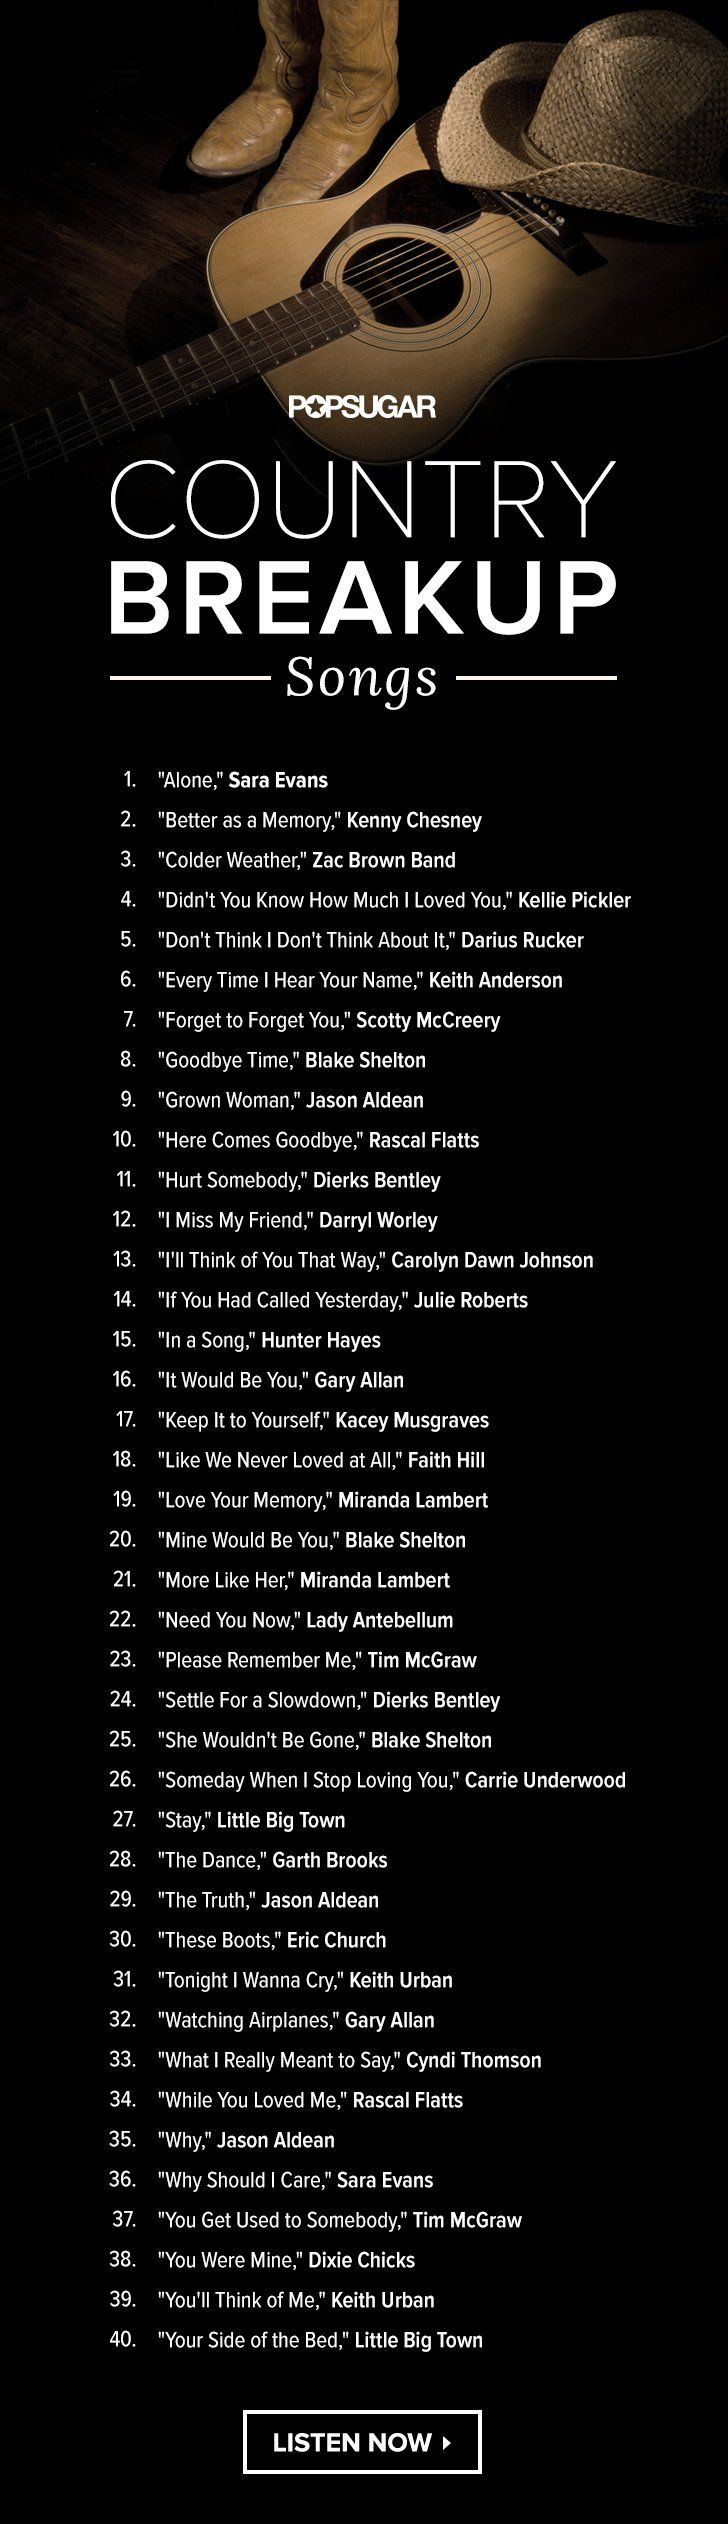 Best 25 country music charts ideas on pinterest country western best 25 country music charts ideas on pinterest country western singers hank williams sr and famous music artists hexwebz Choice Image